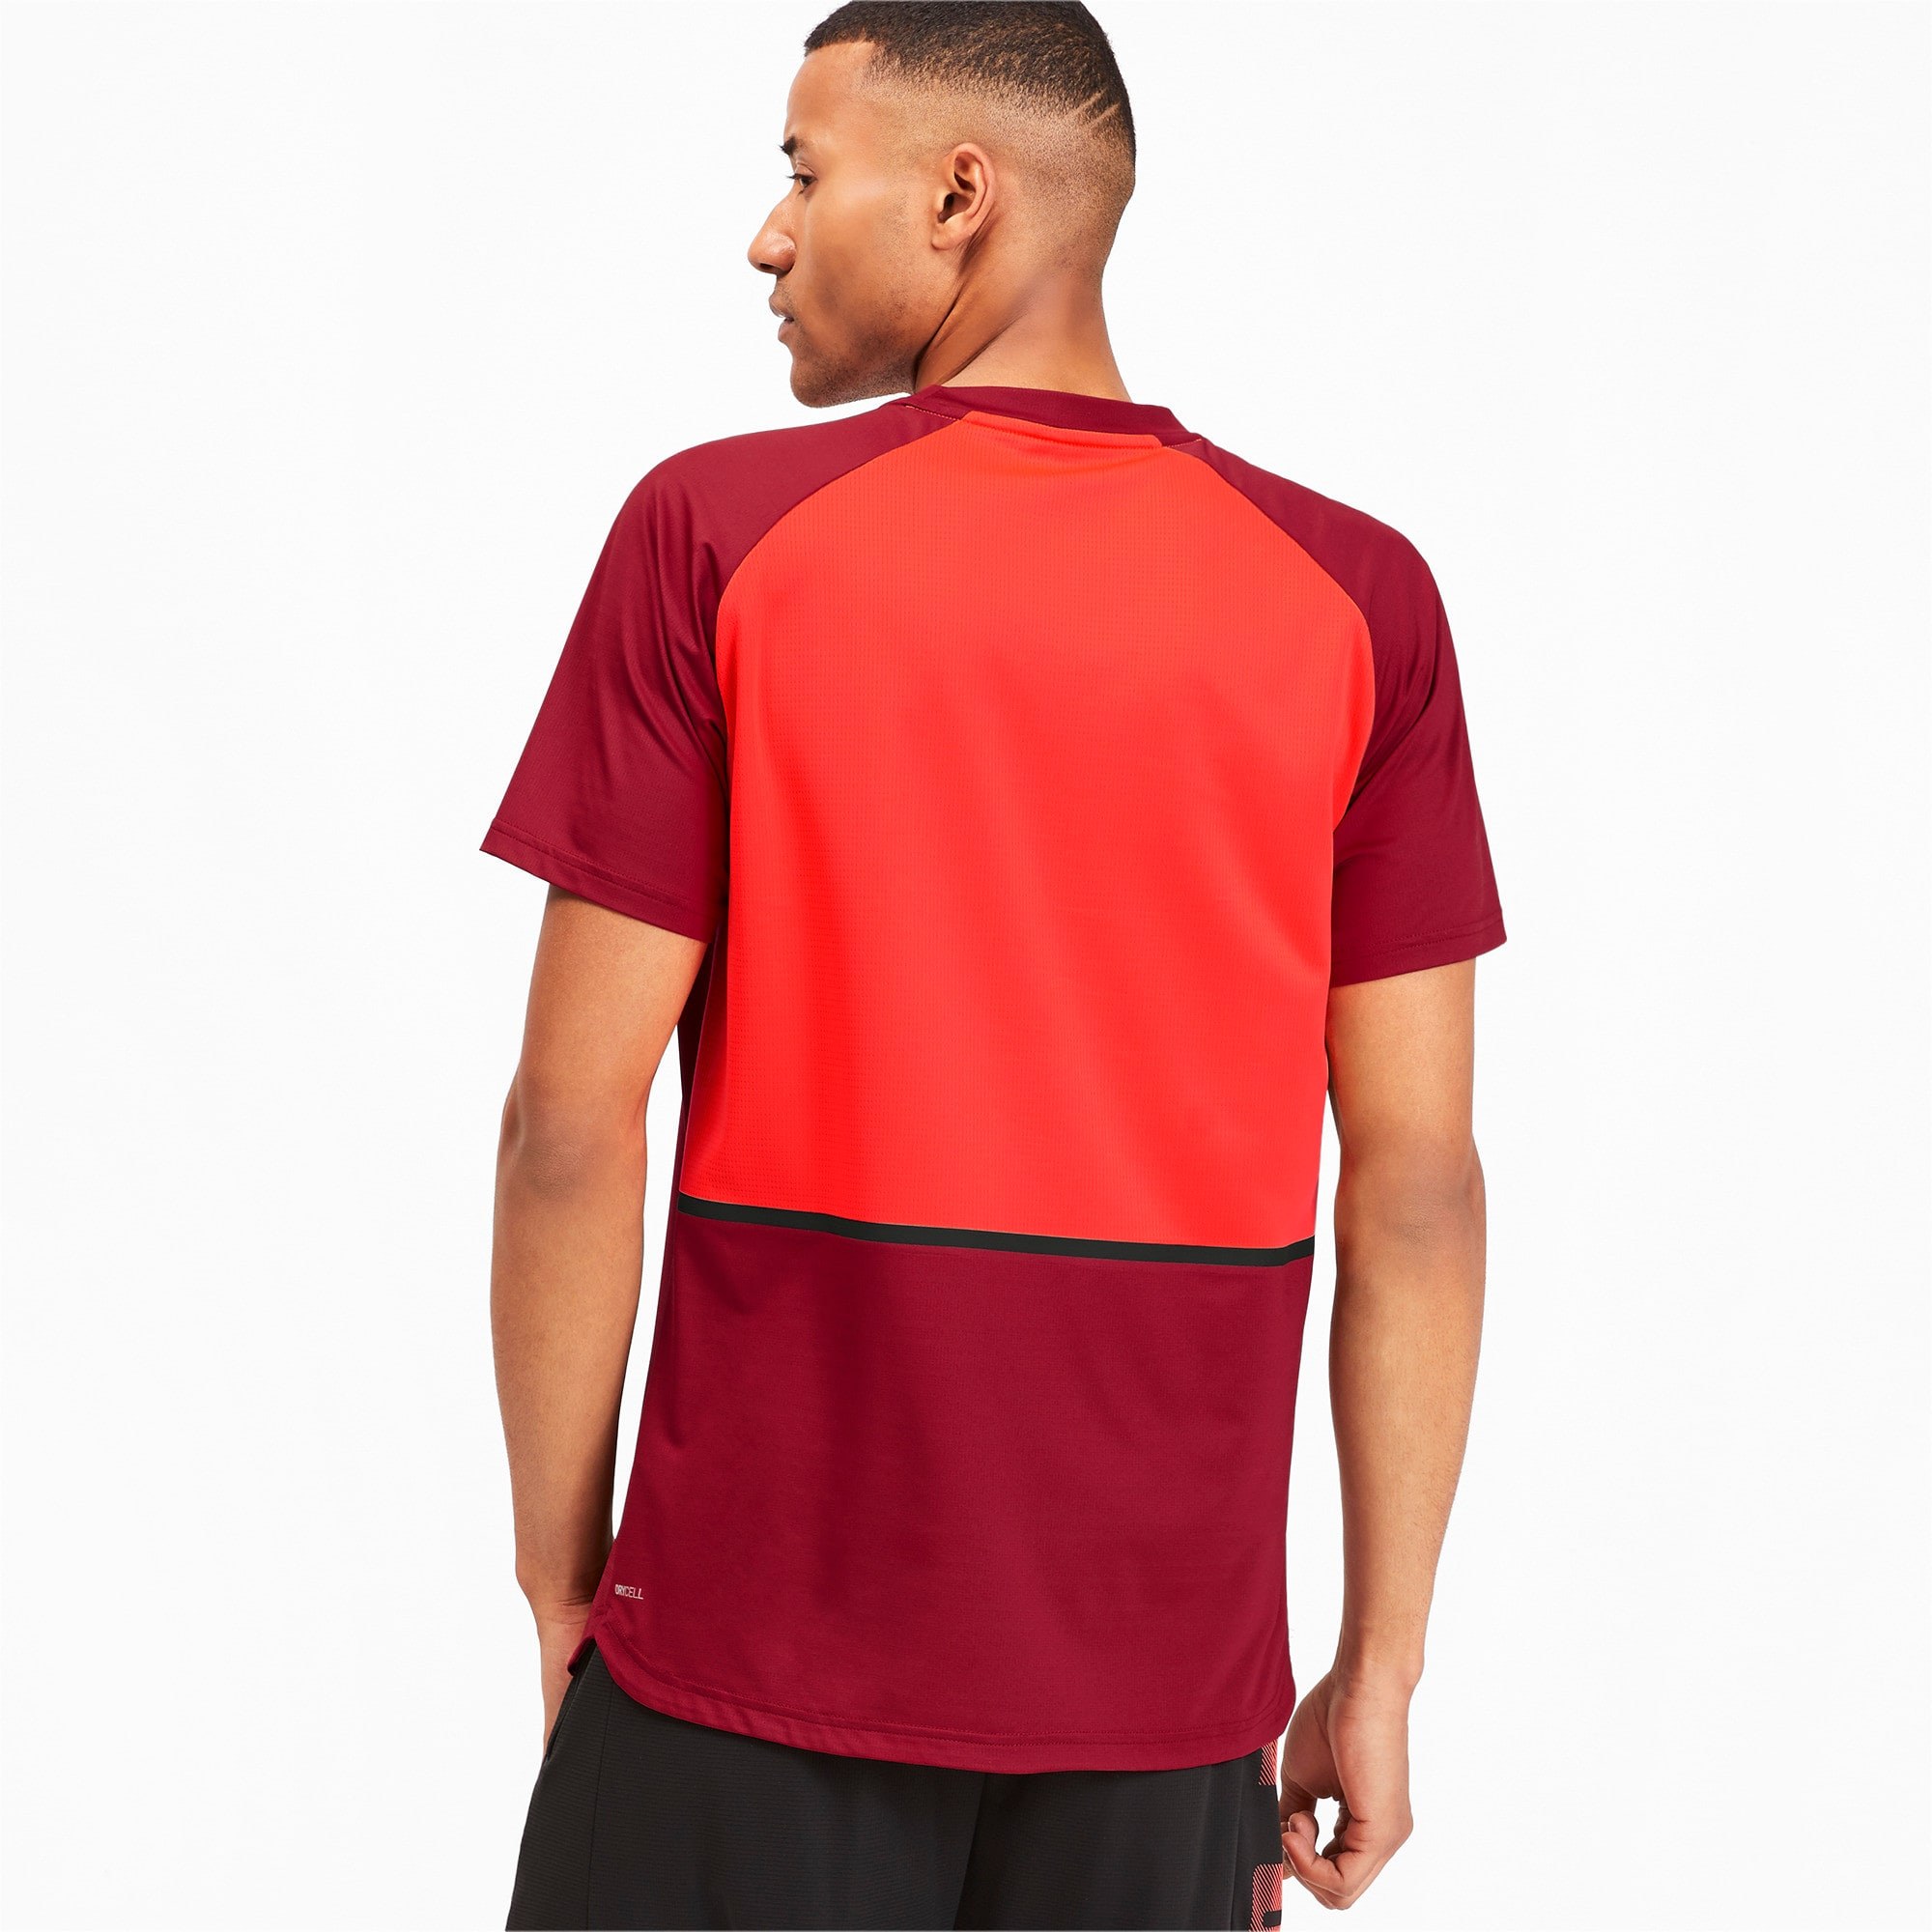 Thumbnail 2 of Power BND Men's Tee, Rhubarb-Nrgy Red, medium